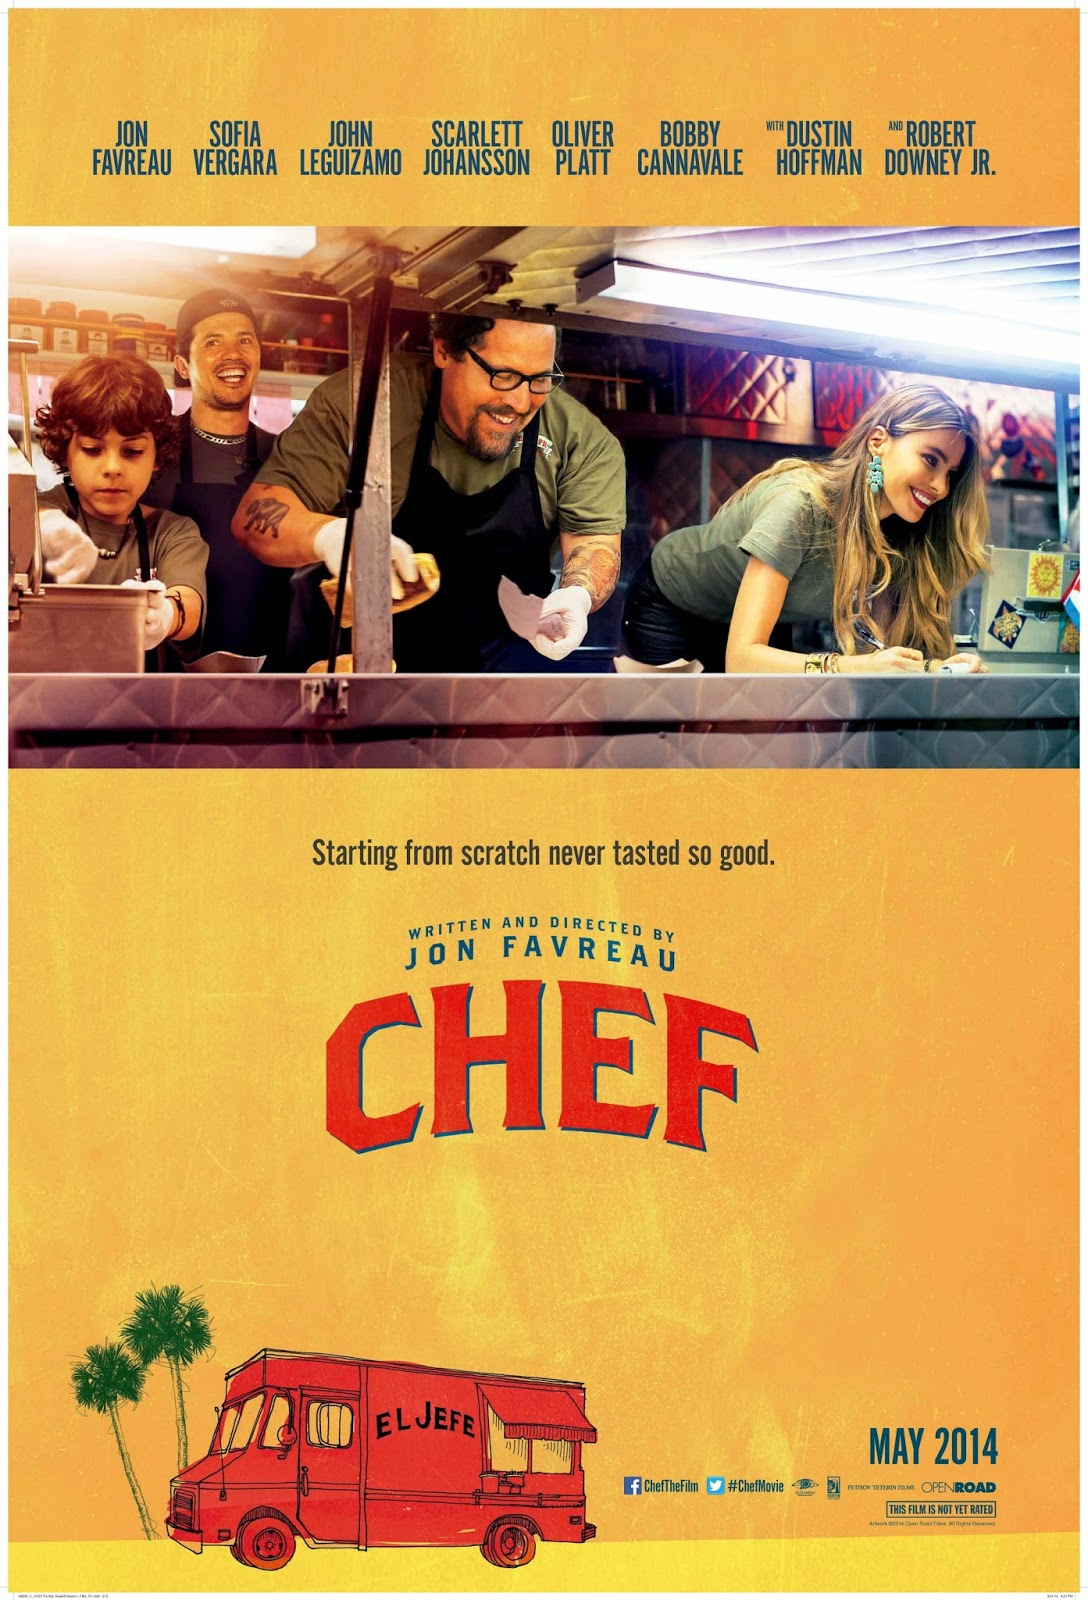 Chef - film poster